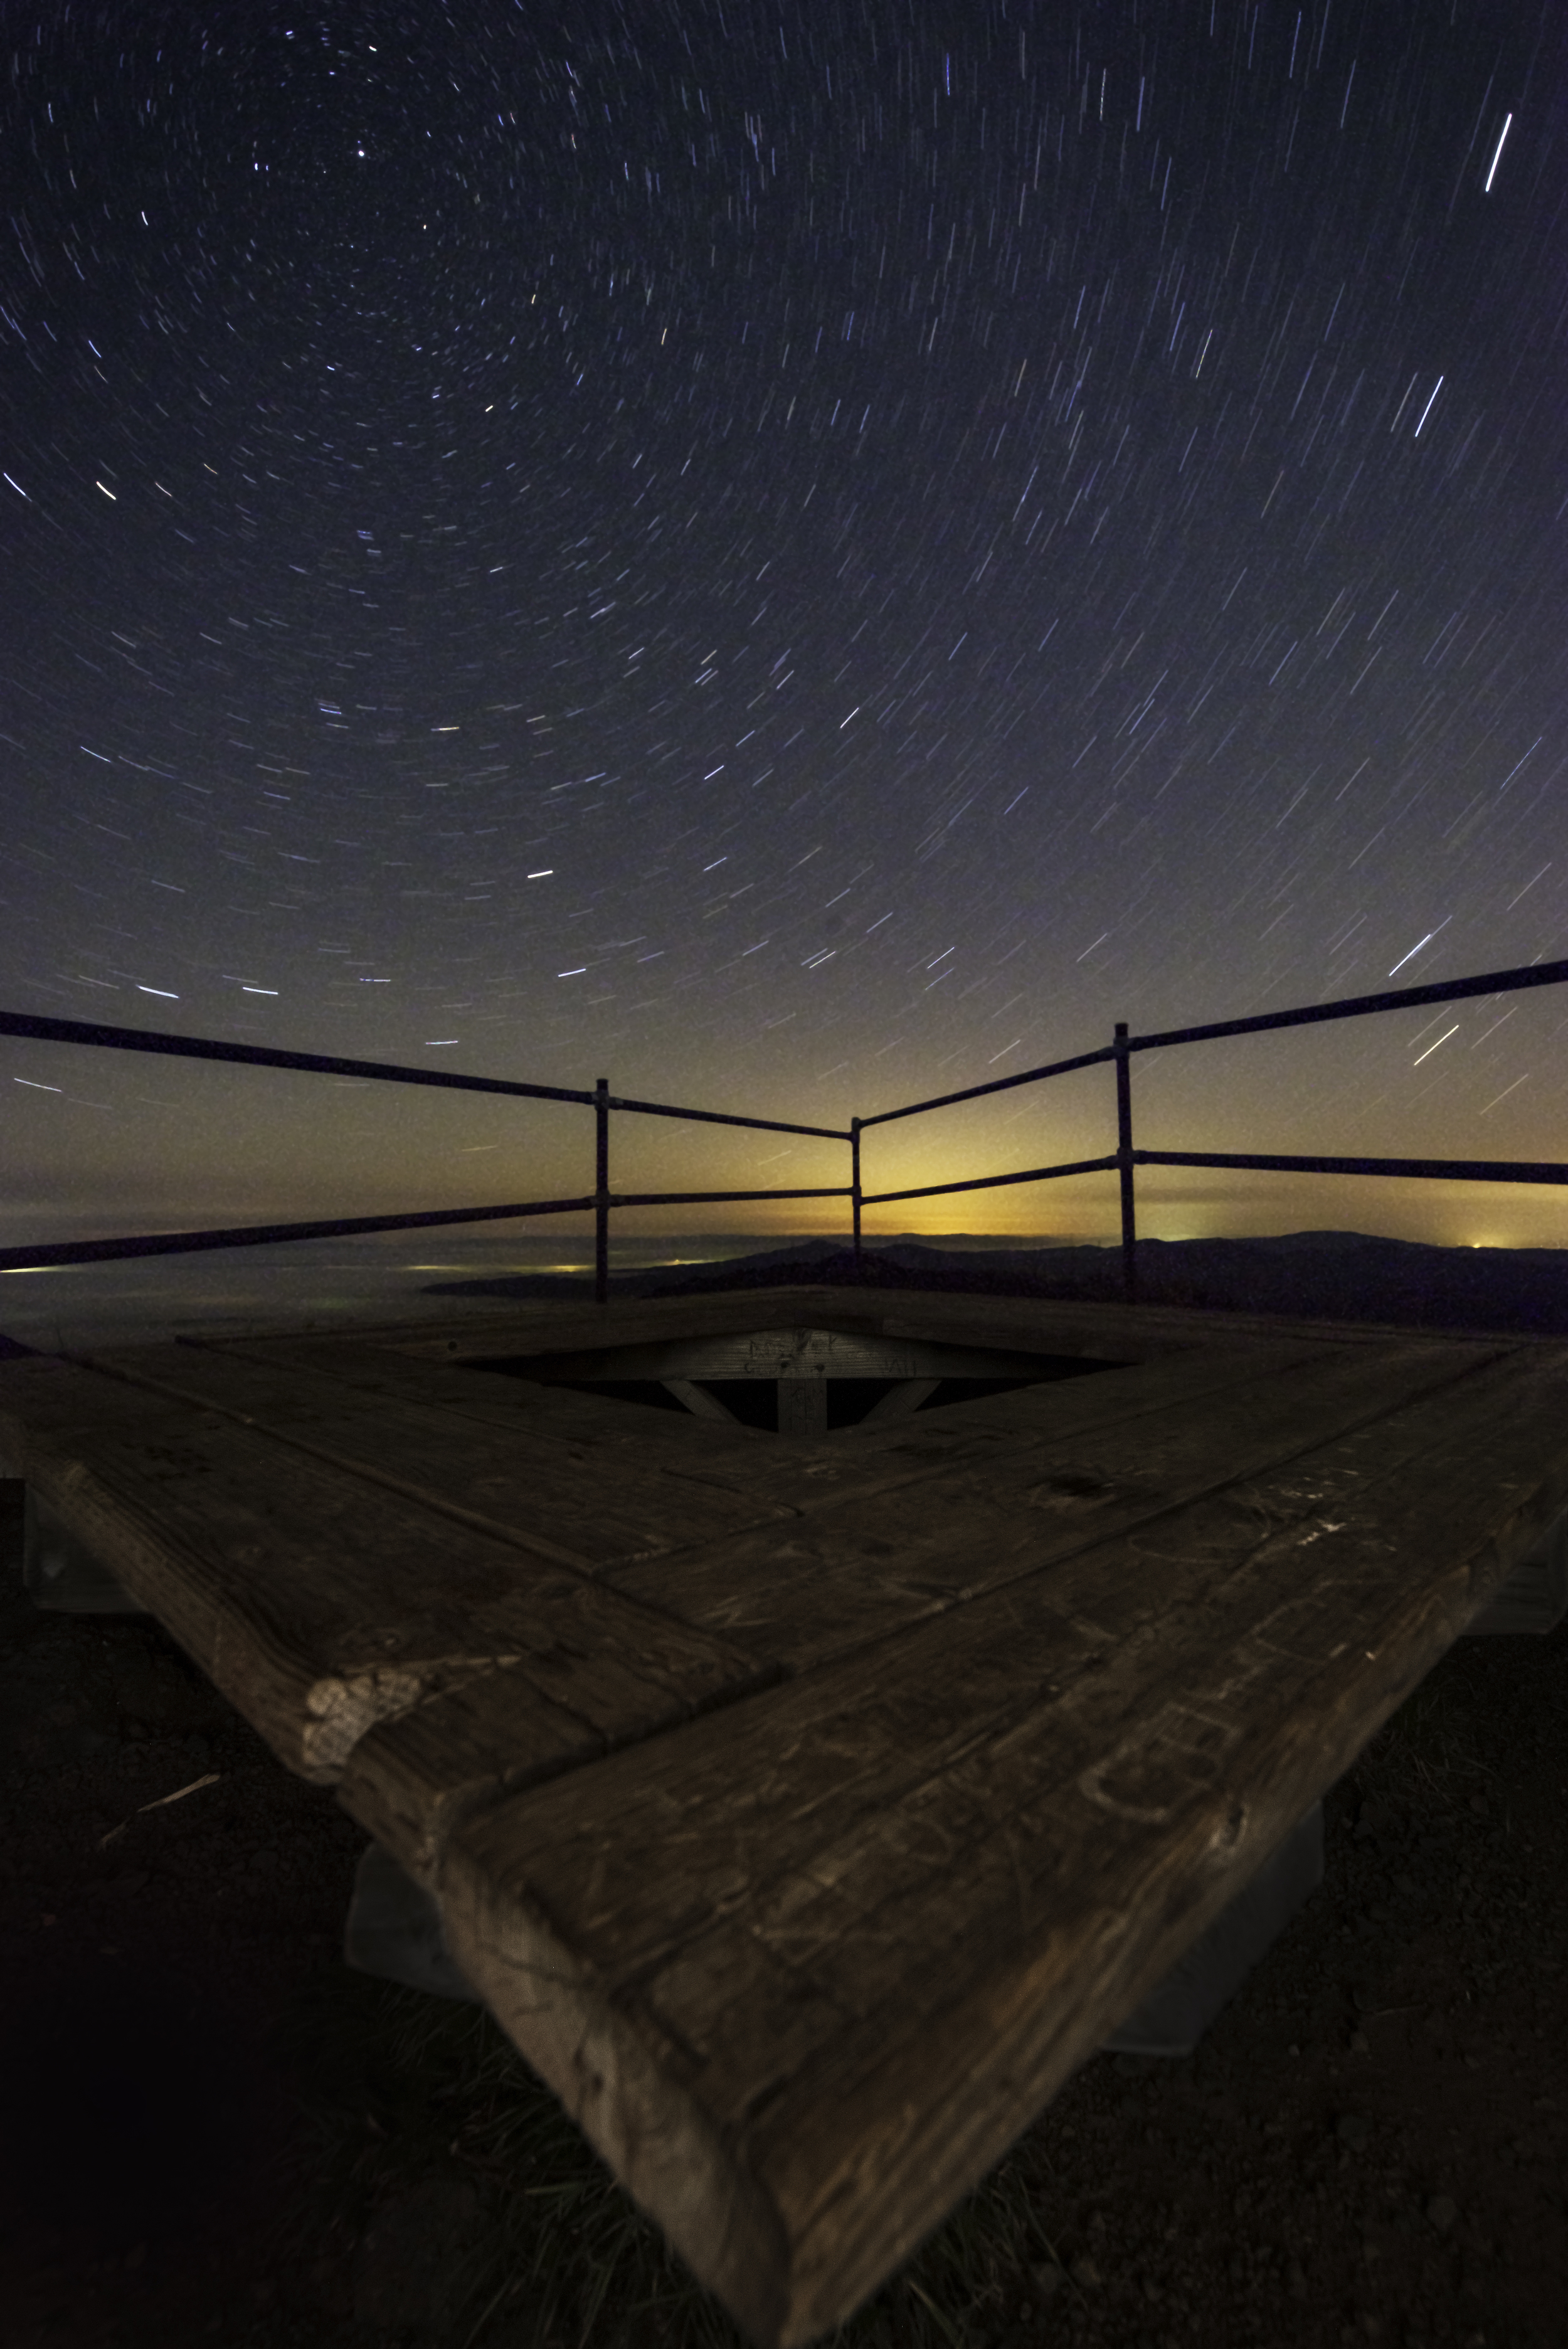 This wooden bench sits unloved under the magnificent stars